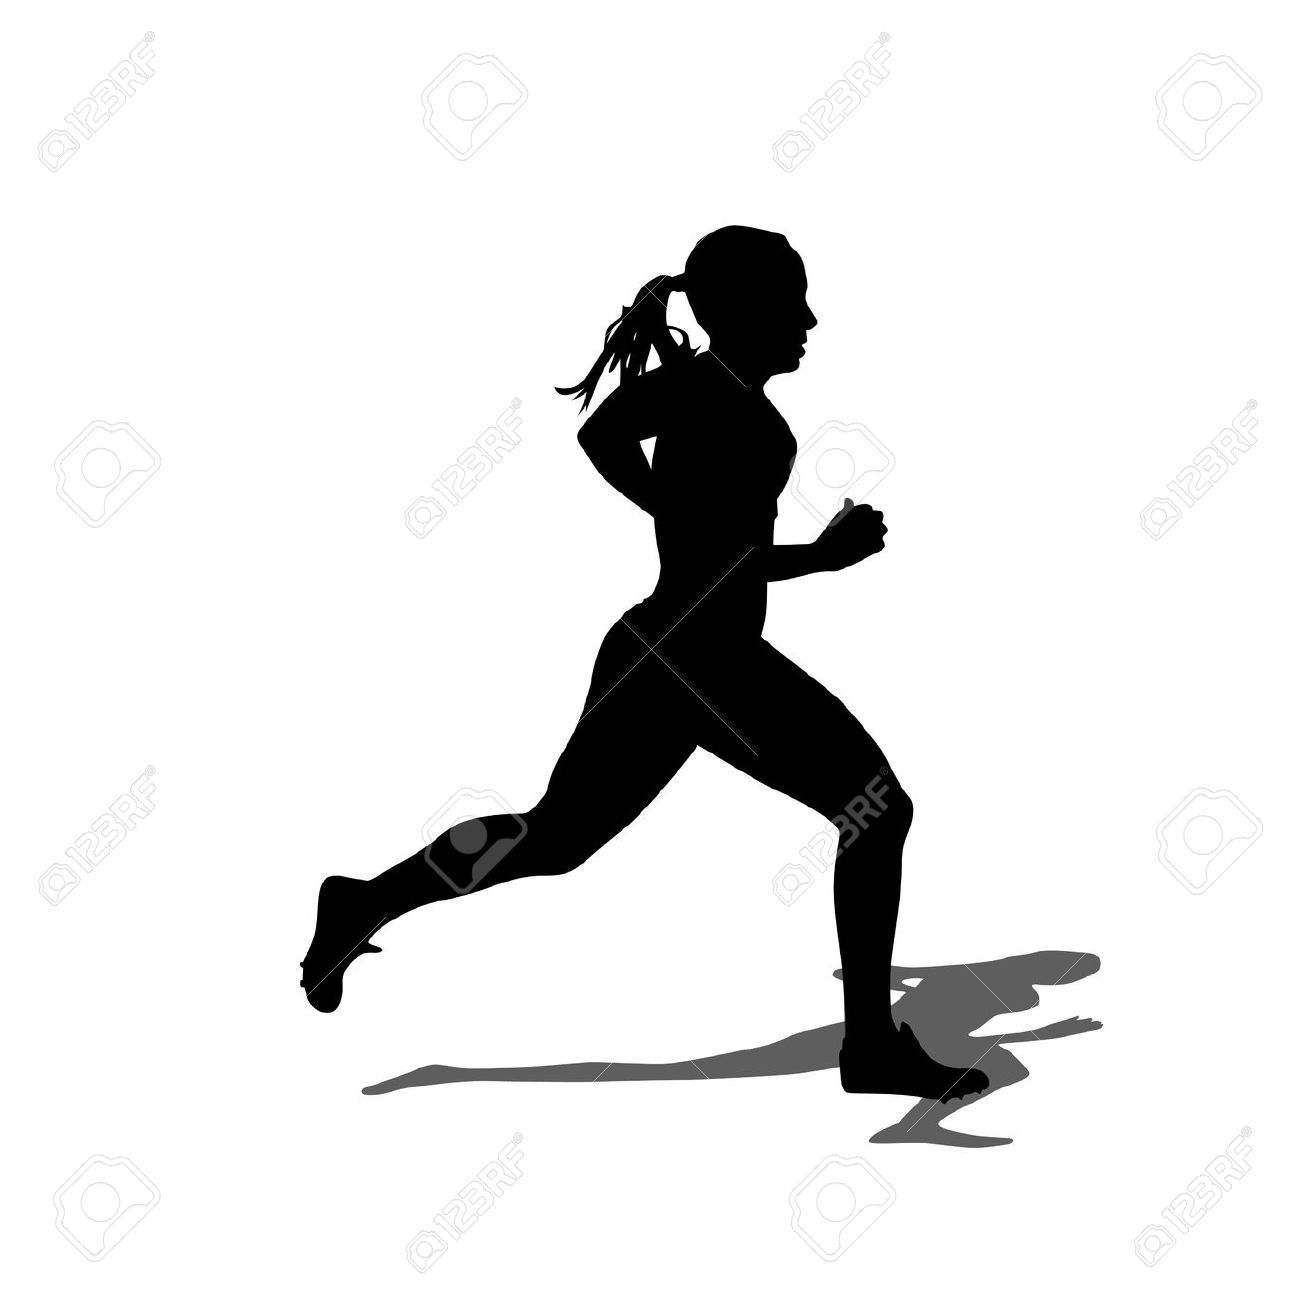 Marathon Runner Silhouette Images Stock Pictures Royalty Free